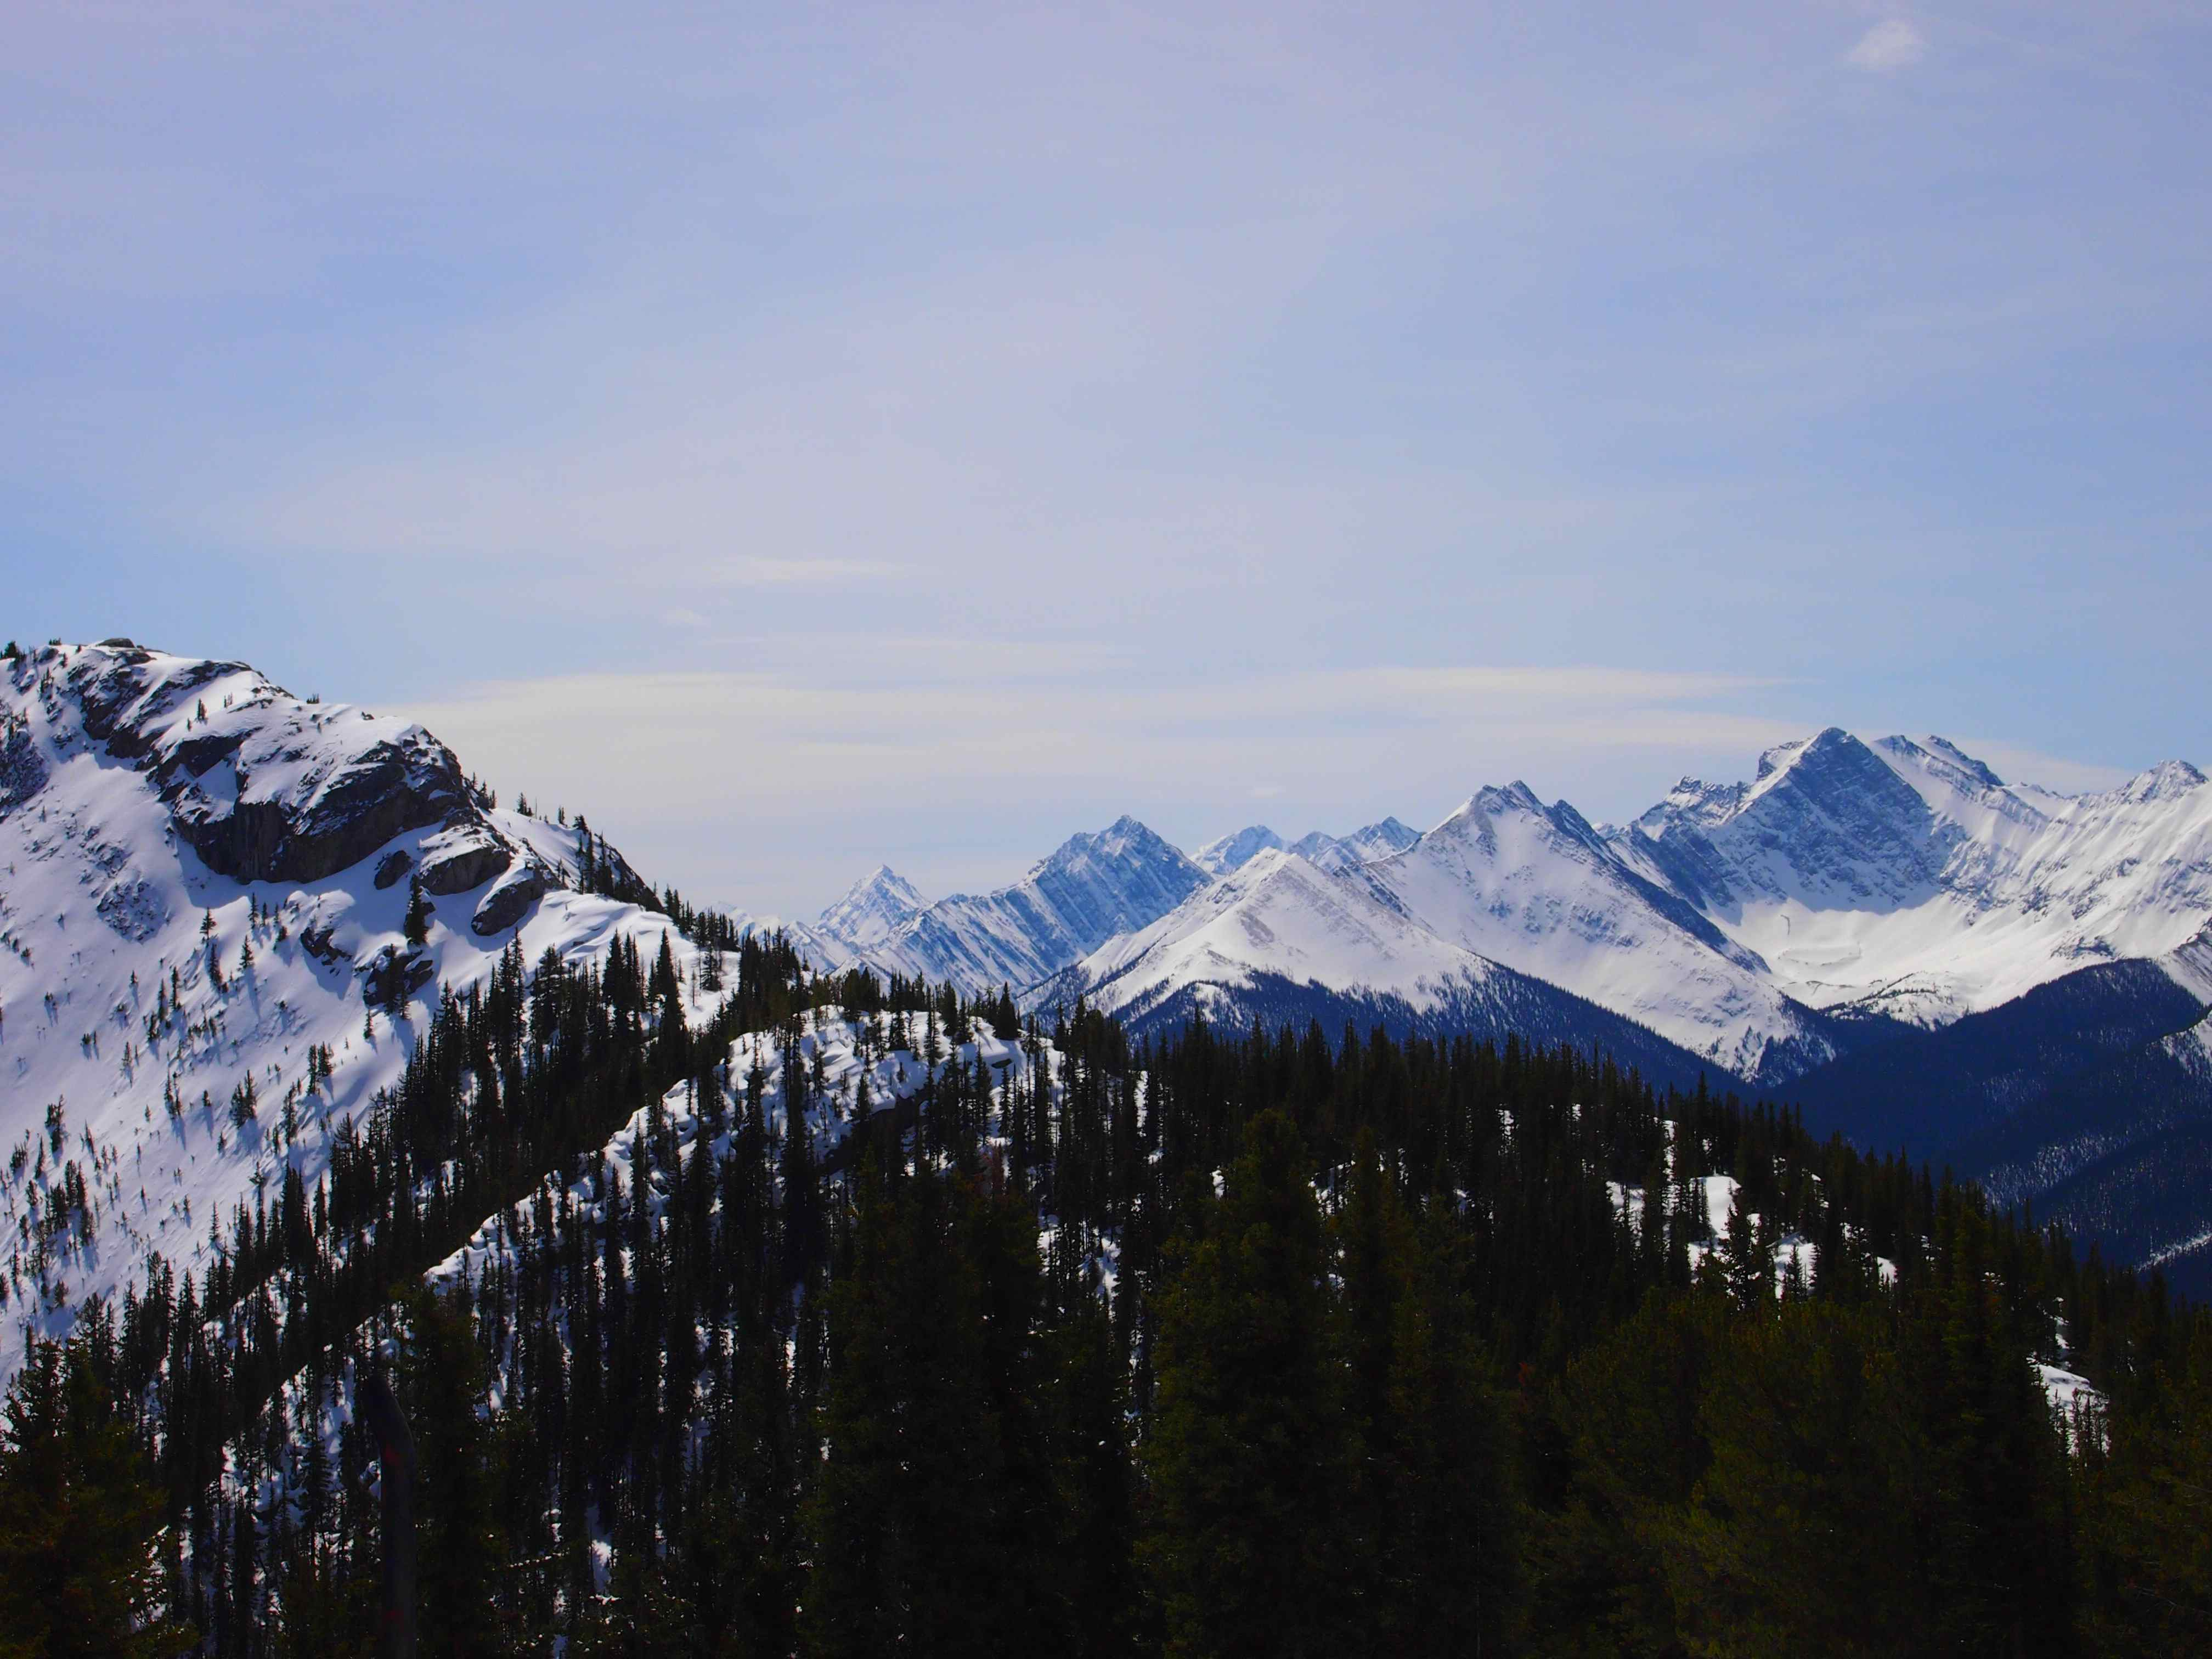 Sulphur Mountain 7